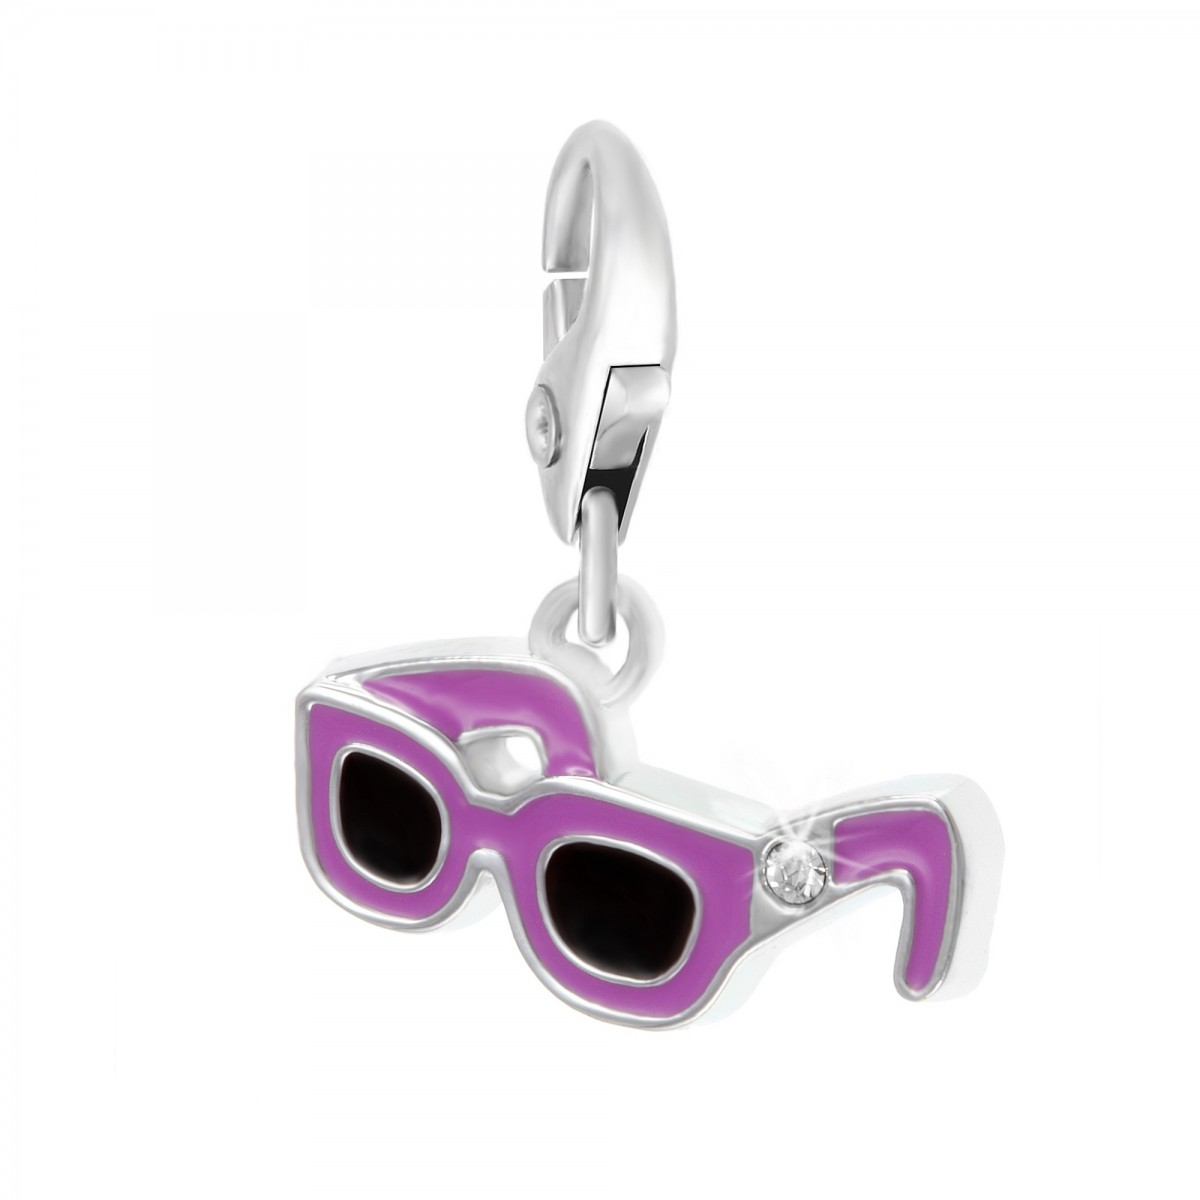 Charm Lunettes mauves So Charm made with Crystal from Swarovski